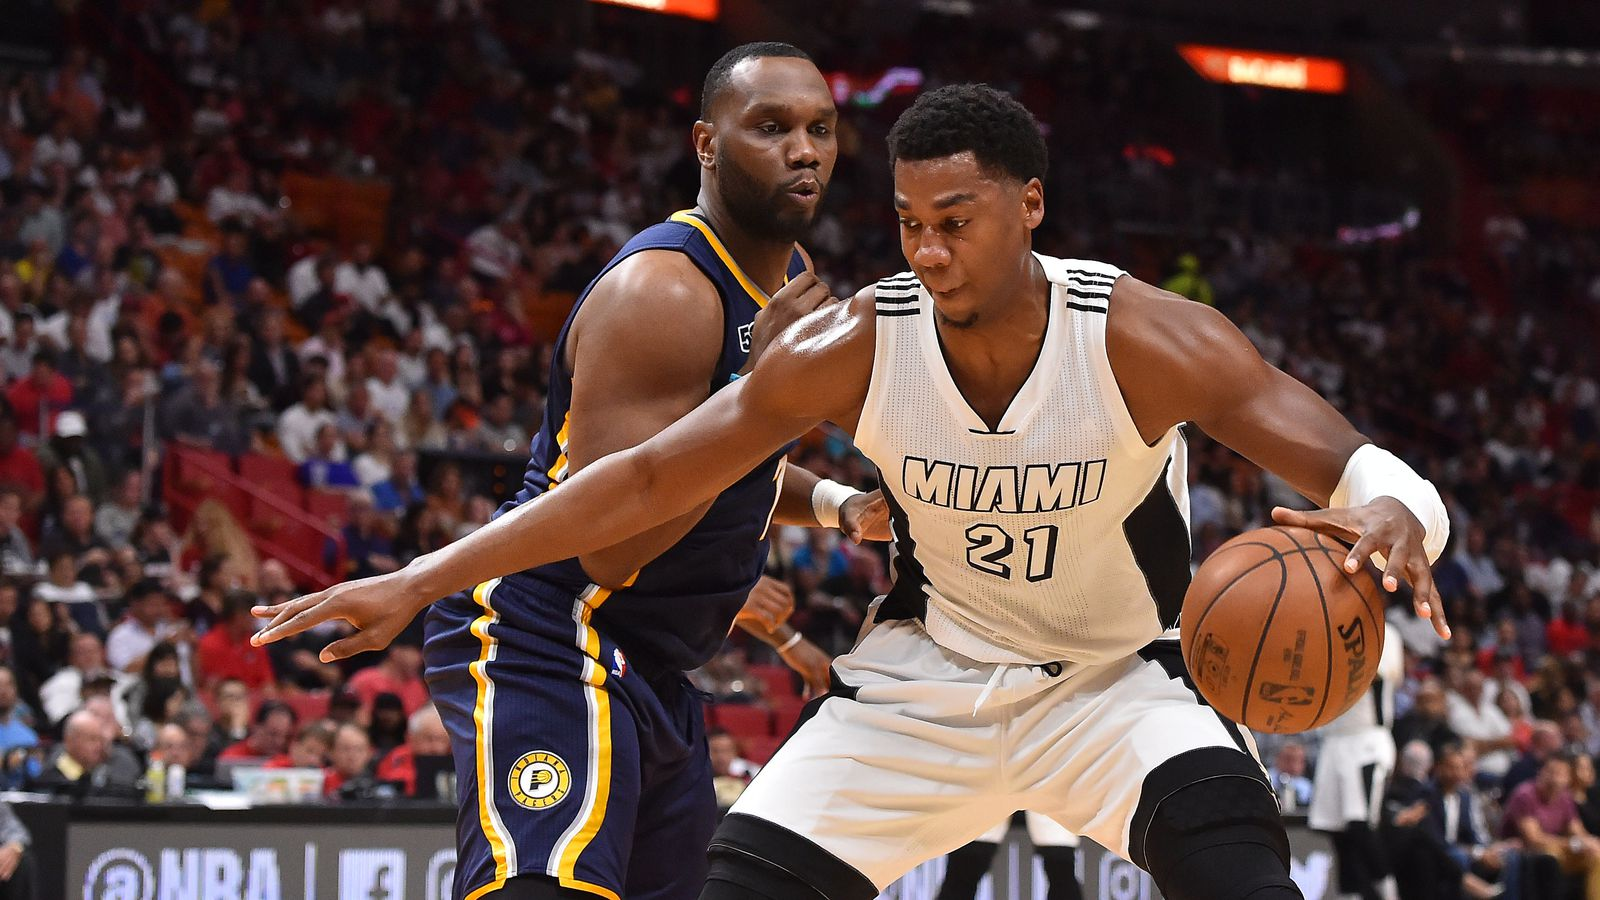 STATS: Hassan Whiteside owns the paint - Hot Hot Hoops